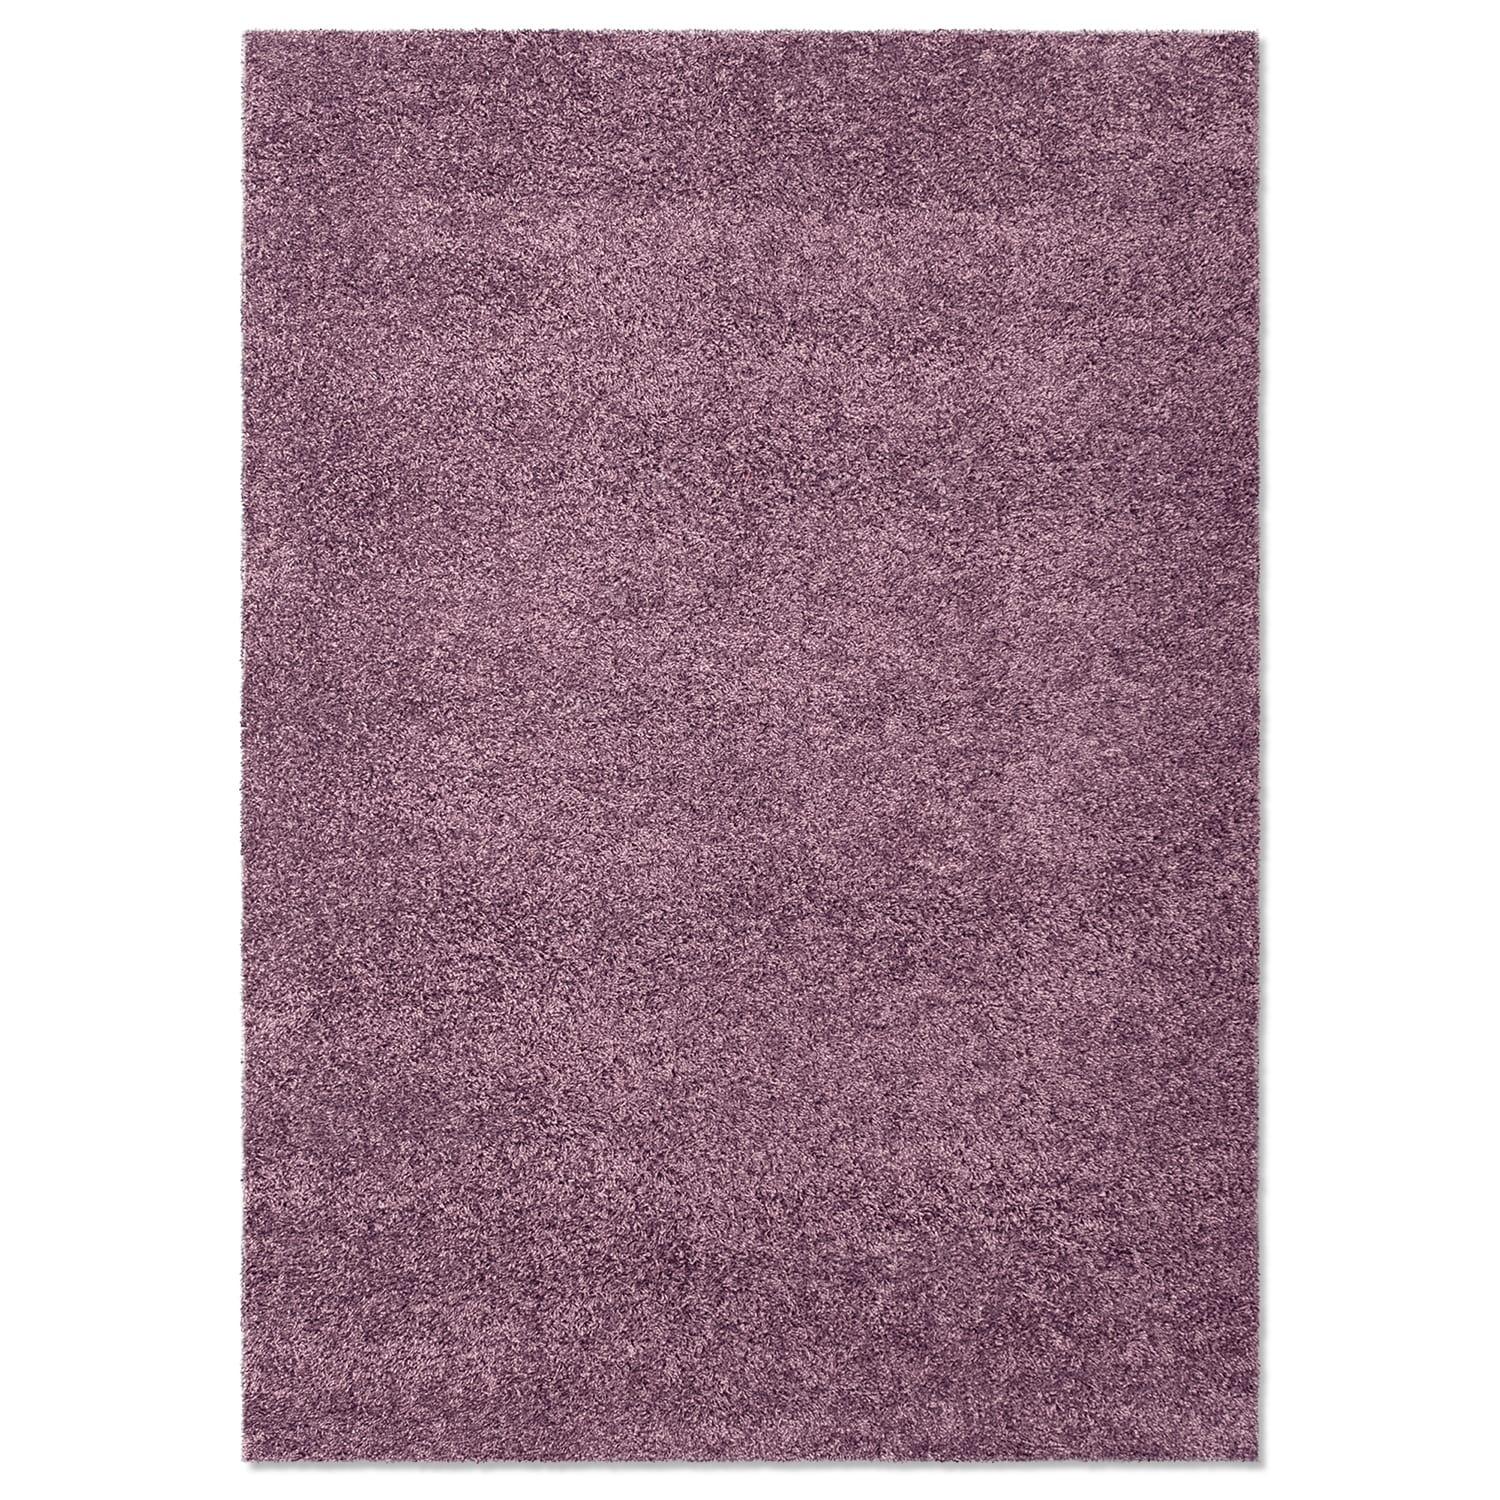 Domino Purple Shag Area Rug (5' x 8')